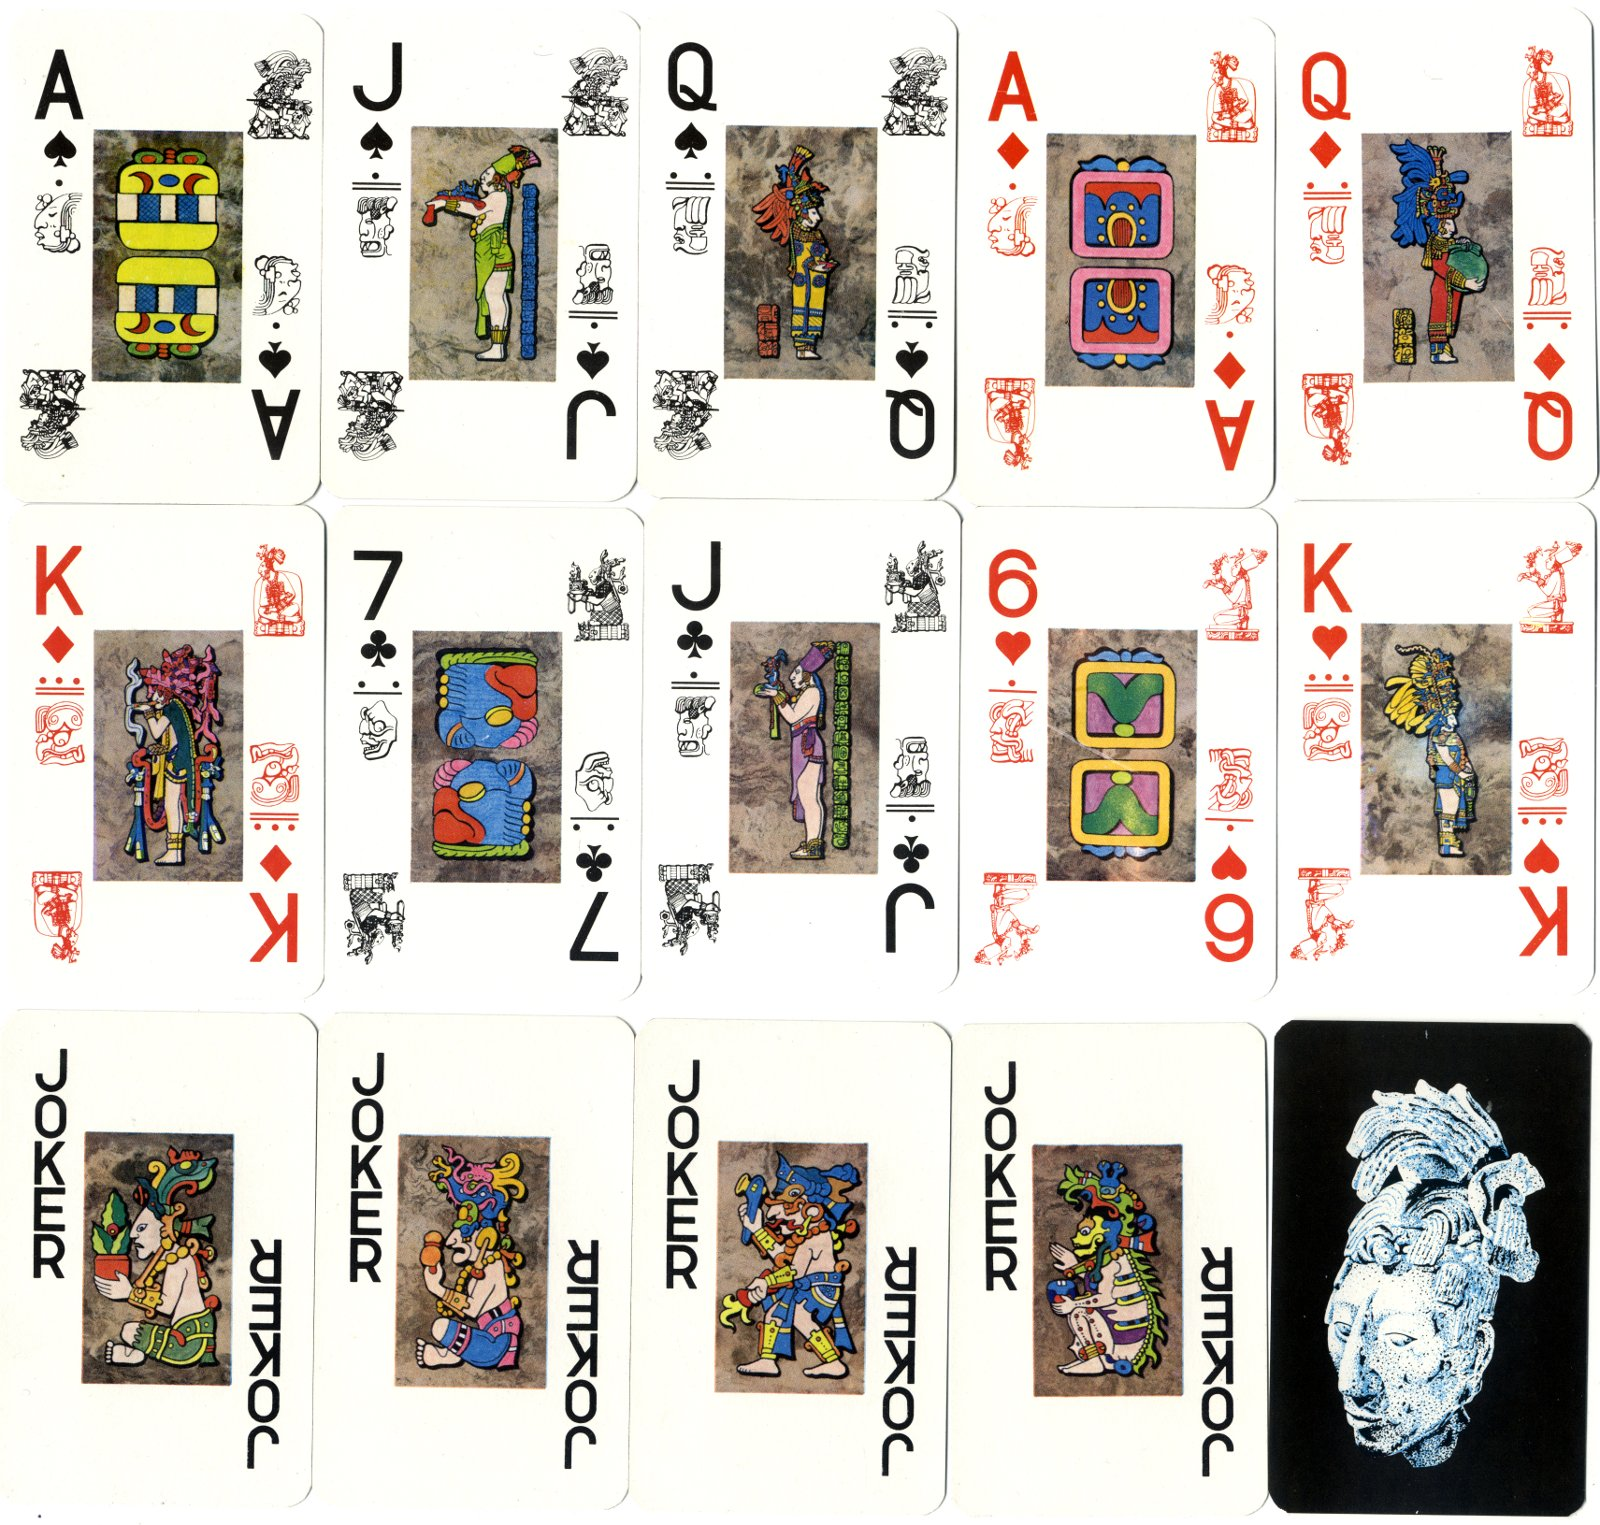 Maya Playing Cards (Naipe Tipo Maya) manufactured in Mexico by Pronaco S.A. de C.V., 1991